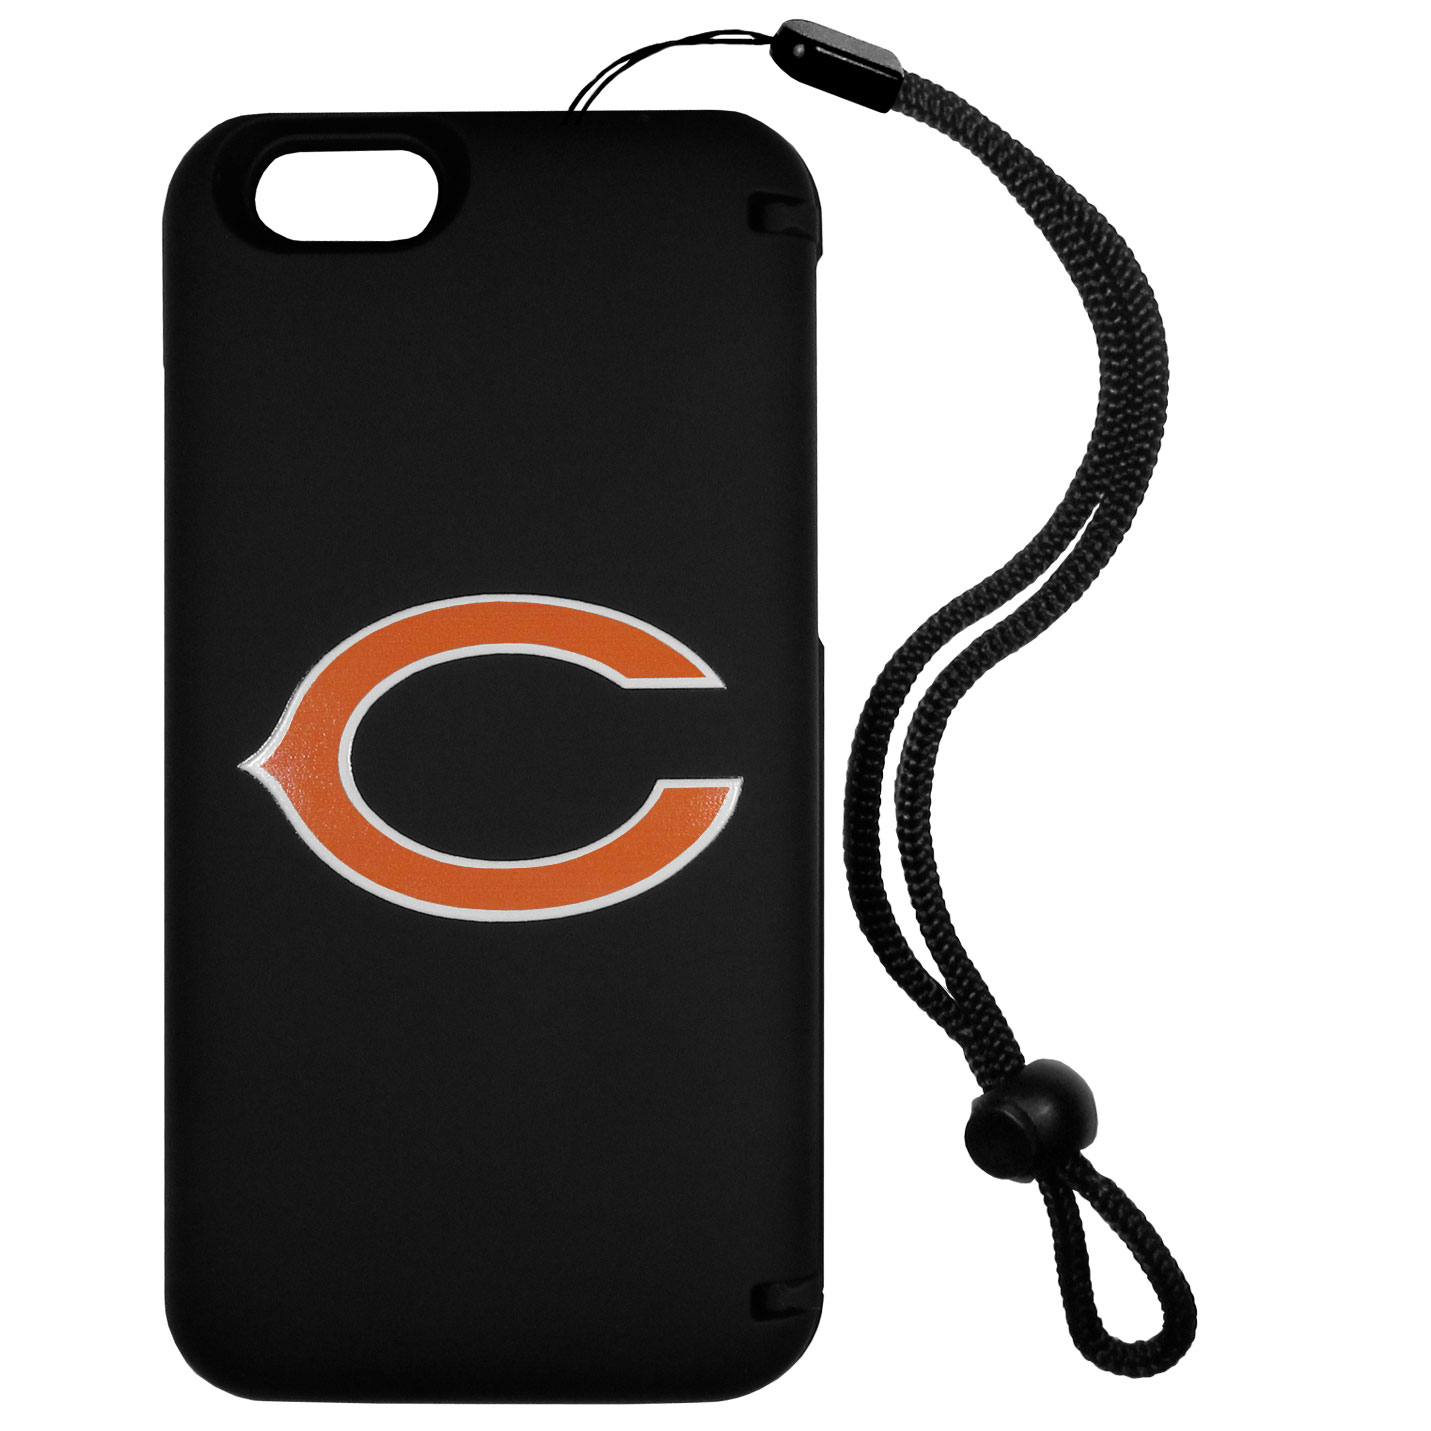 Chicago Bears iPhone 6 Everything Case - This case really does have everything but the kitchen sink! The hidden compartment lets you keep your cards, money and tickets to the big game safe and secure and has a compact mirror so you can make sure your game face is ready to go. It also comes with a kickstand to make chatting and watching videos a breeze. The wrist strap allows you to travel with ease with your everything case. If that's not enough, it also comes with the Chicago Bears logo printed in expert detail on the front.